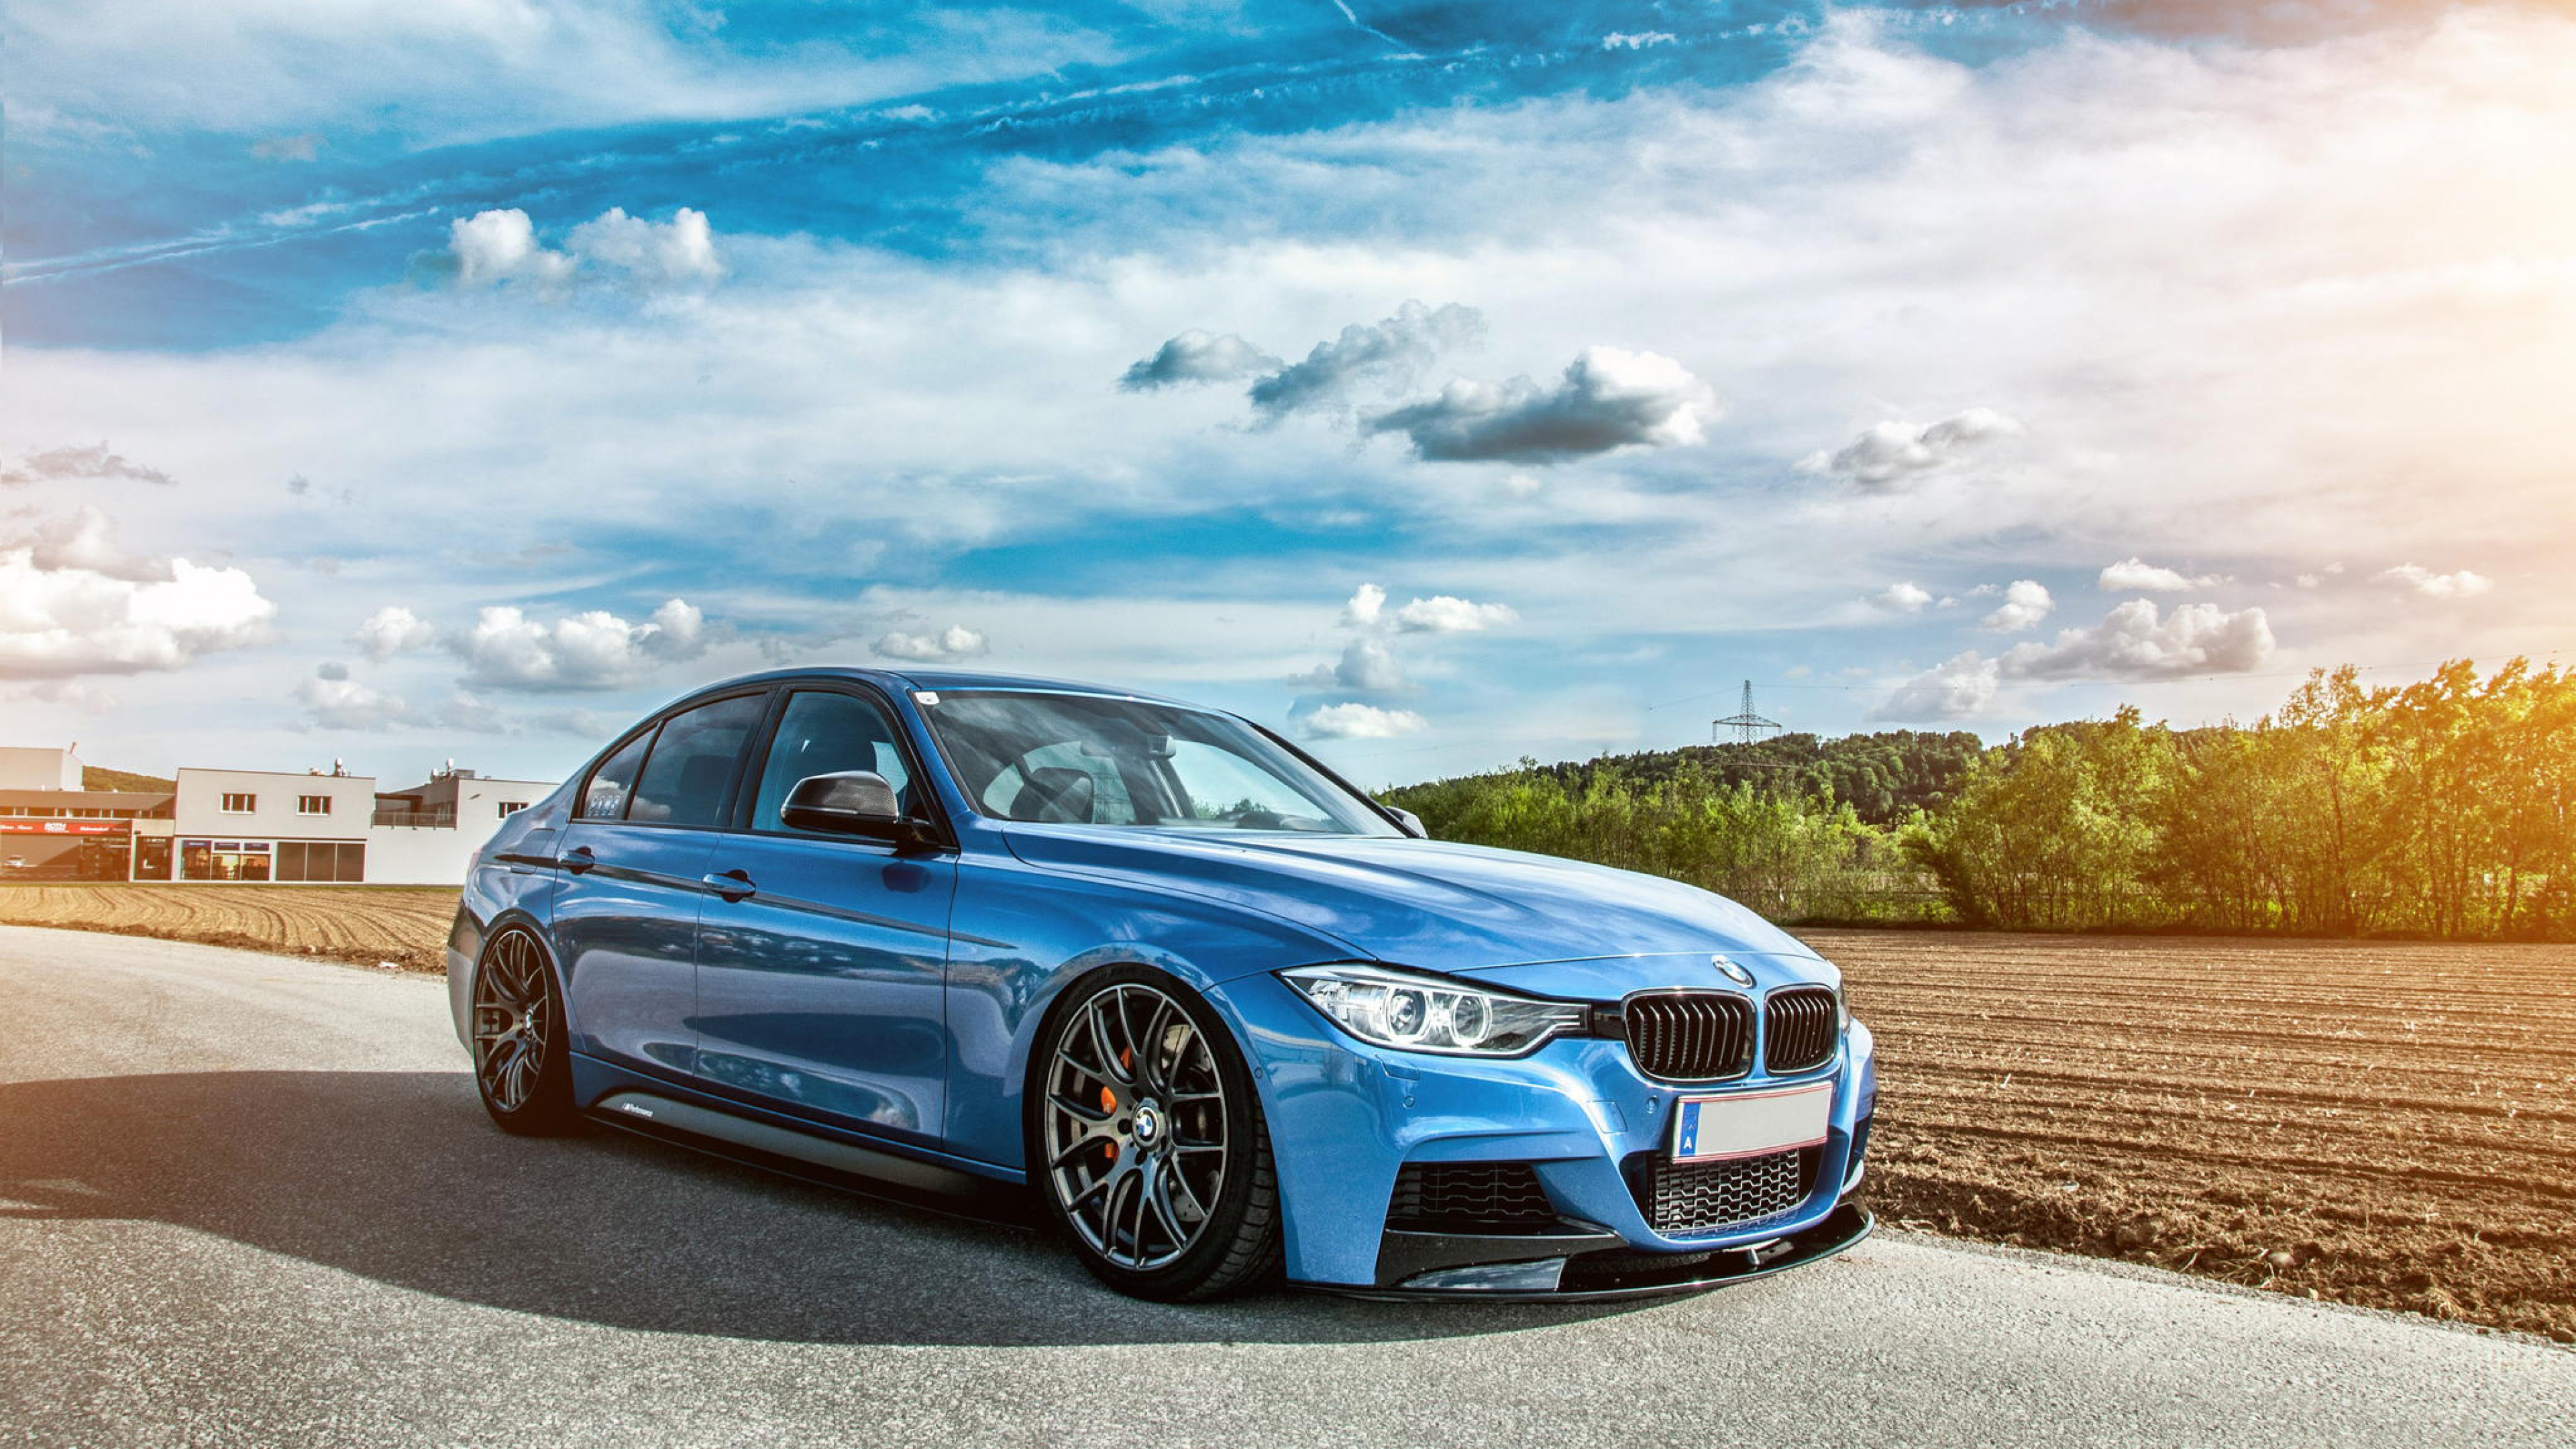 1920x1080 Bmw F30 Laptop Full Hd 1080p Hd 4k Wallpapers Images